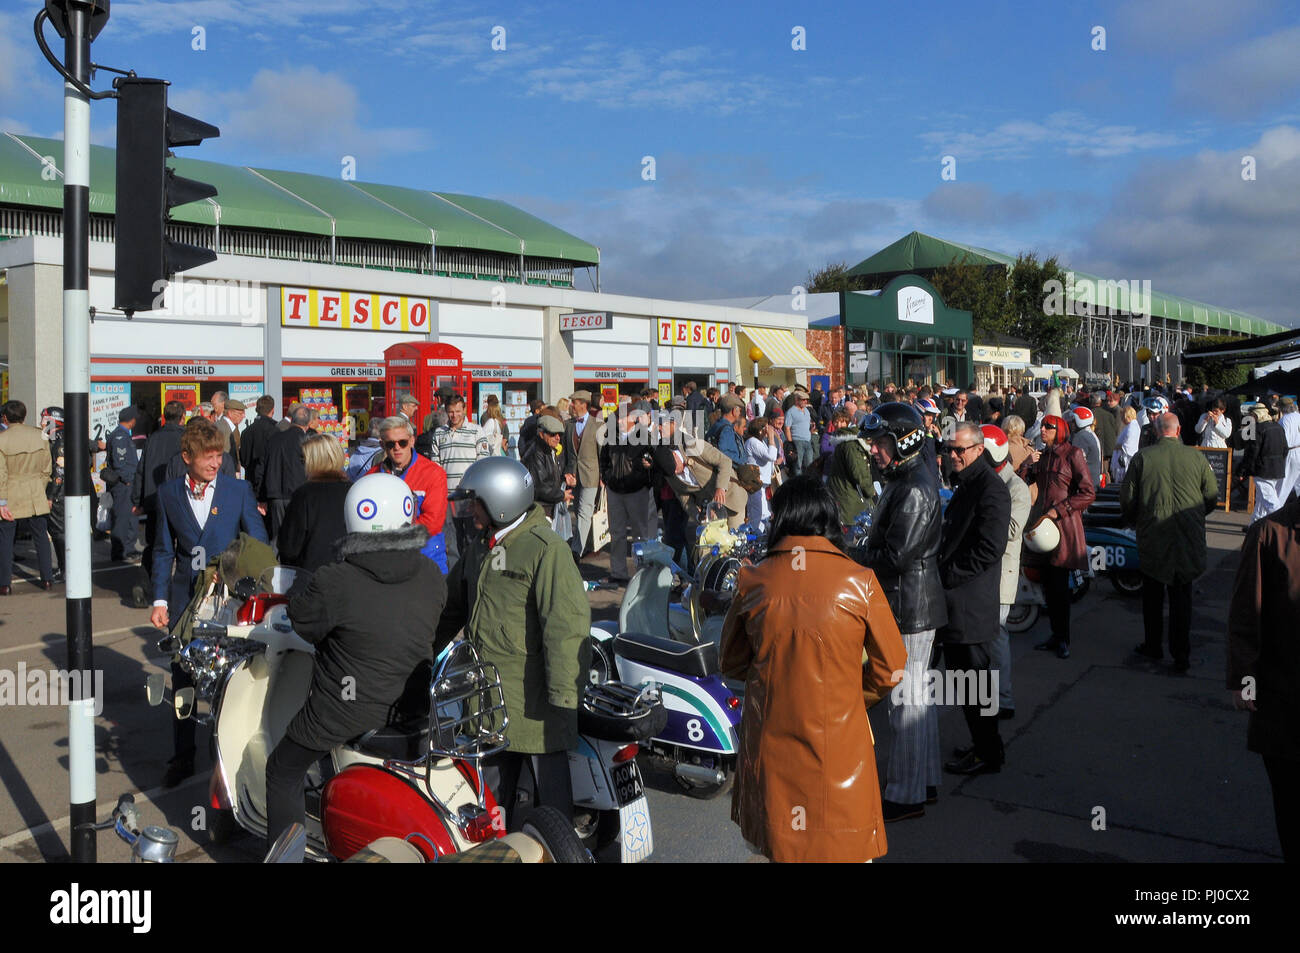 Street scene at the Goodwood Revival with people in period attire and mopeds. Retro Tesco store. Period costume. Timeless - Stock Image